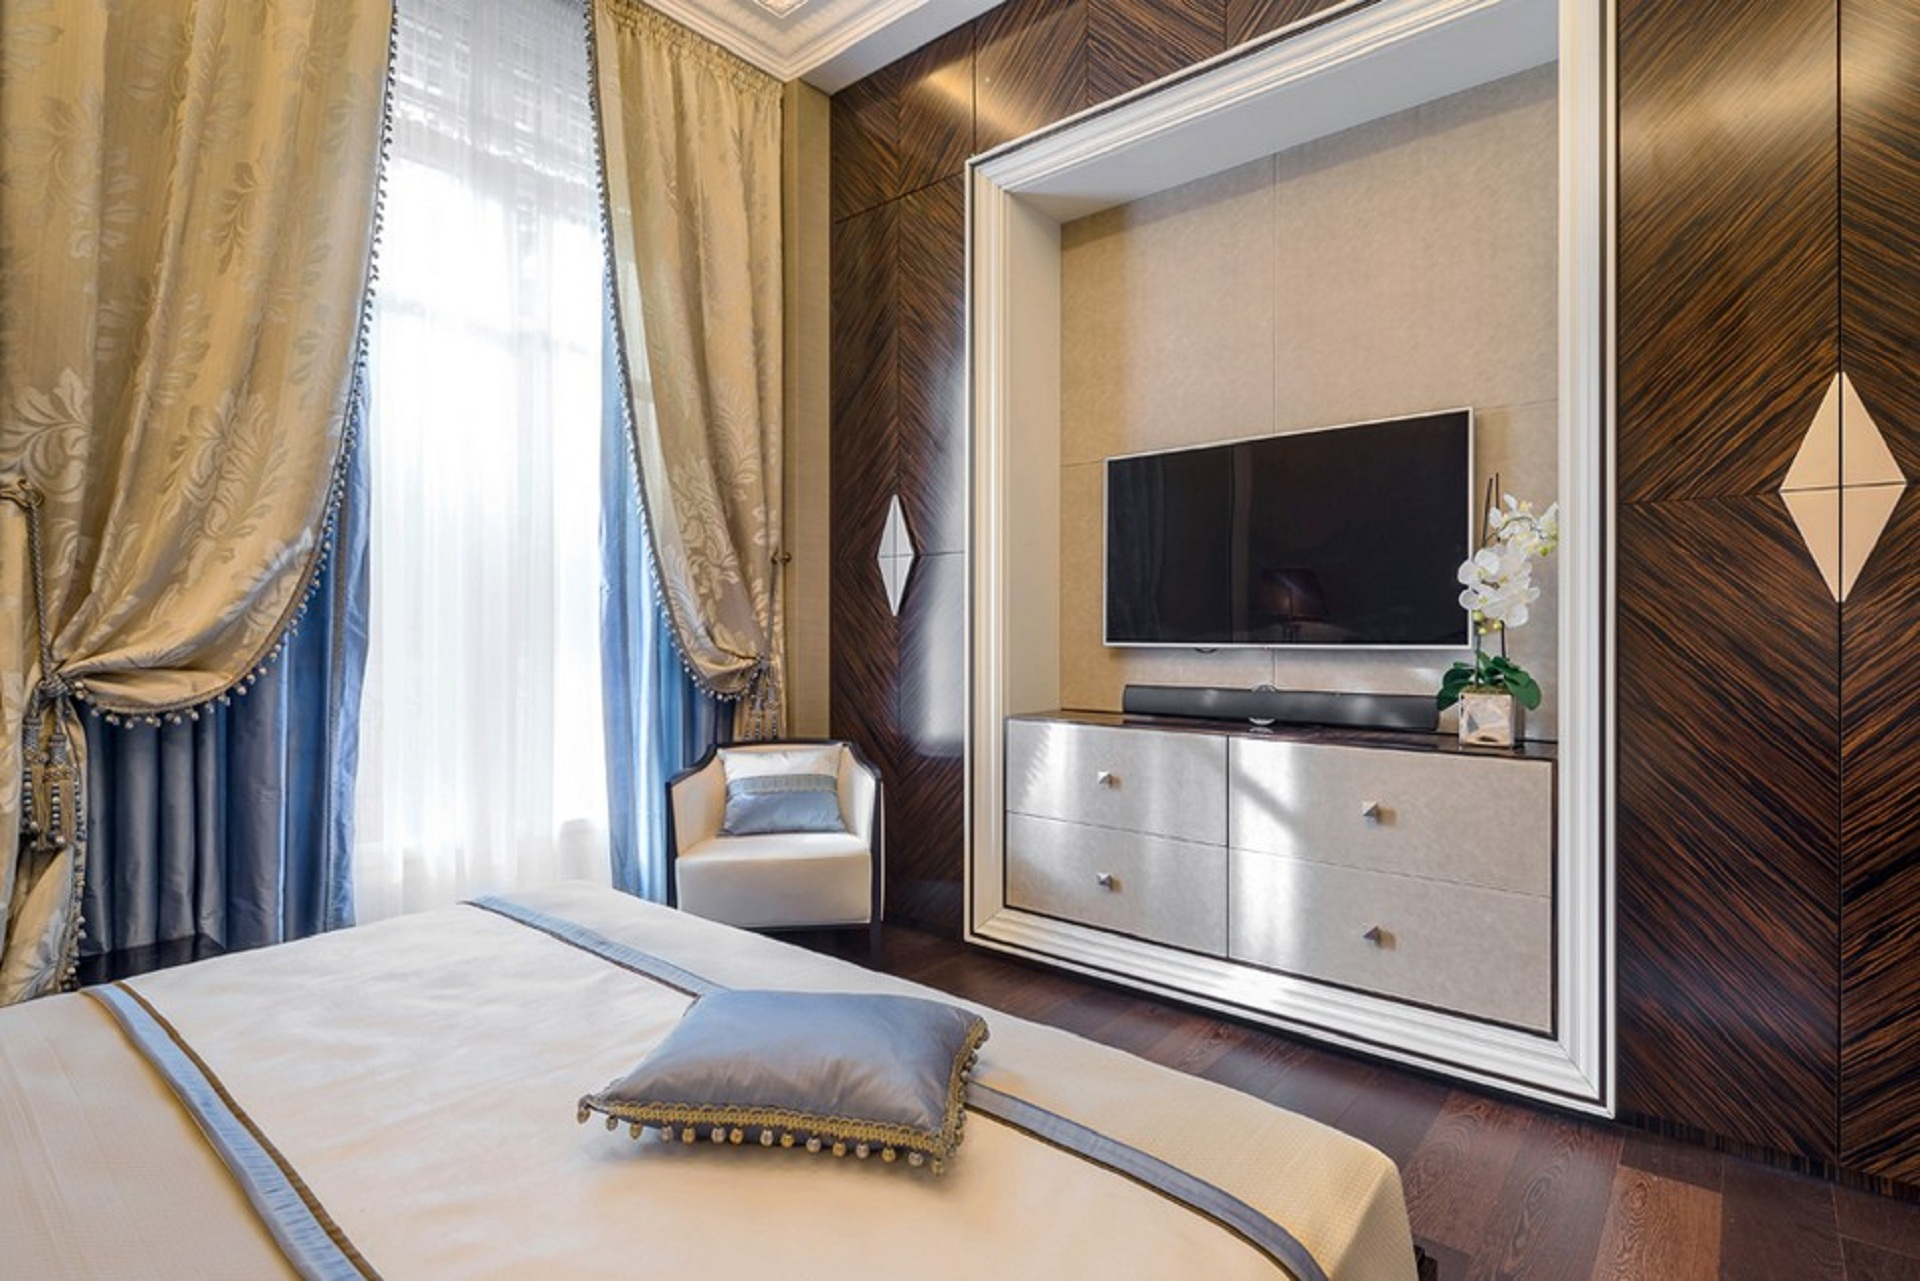 Rent an apartment Ospedaletti without intermediaries